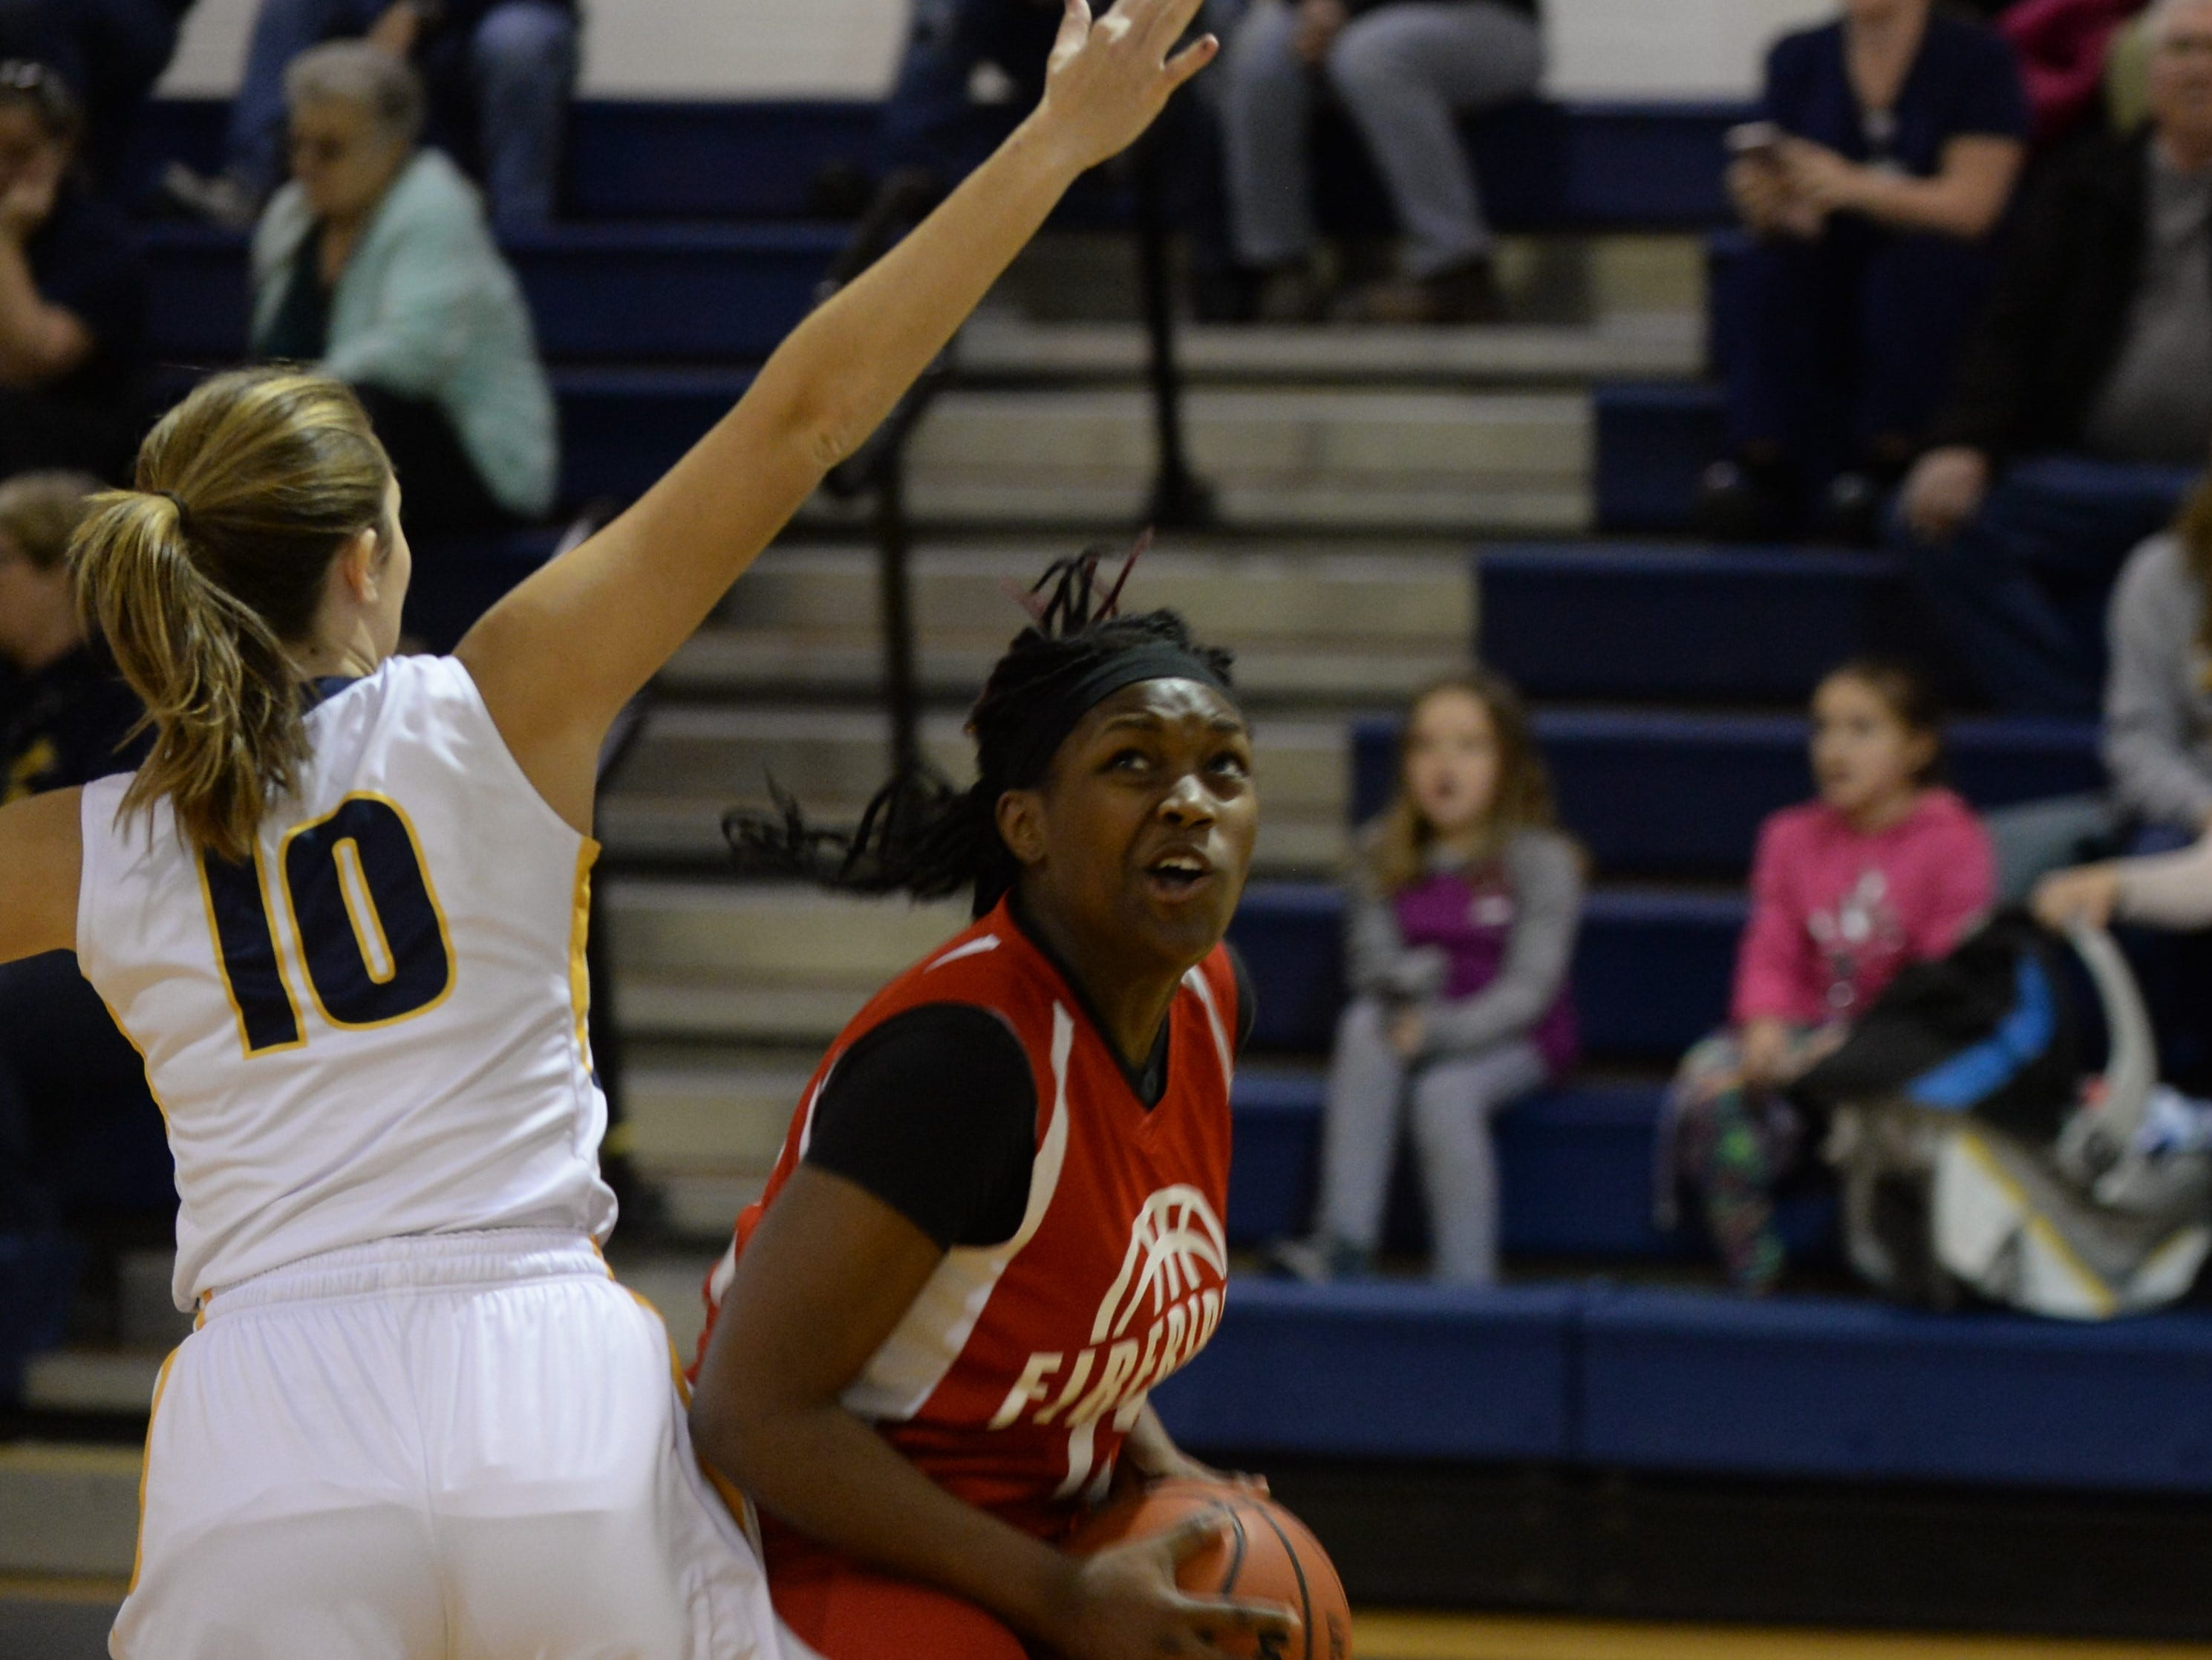 Arcadia's Denija Woolford looks to the net against Chincoteague on Thursday, Jan. 17, 2019.